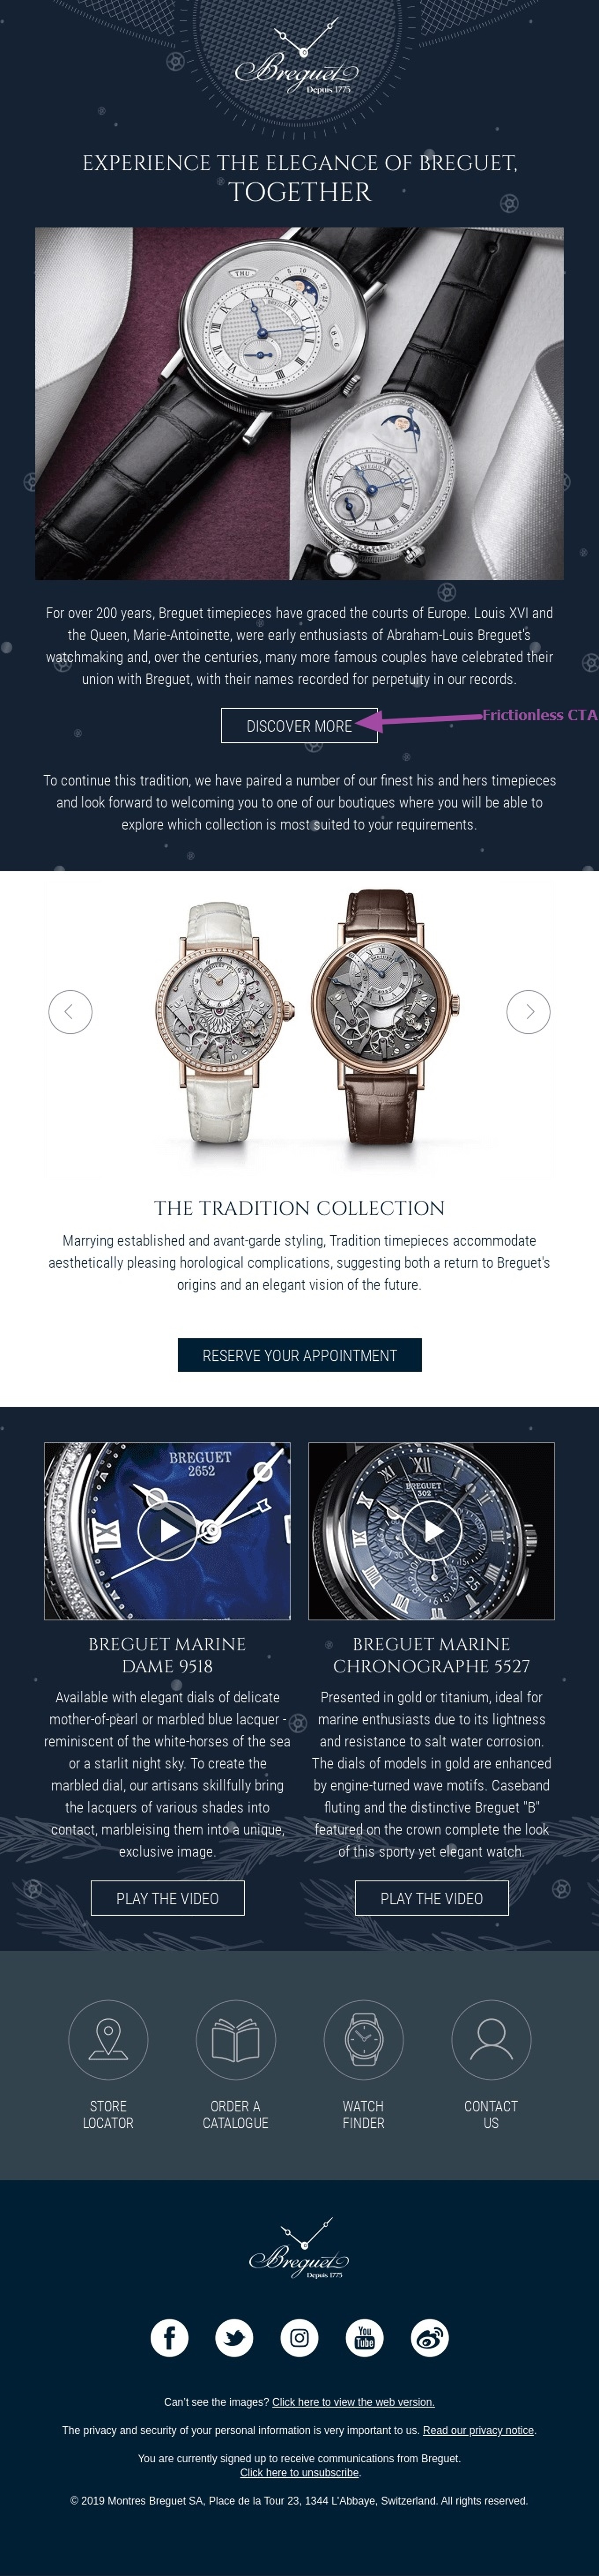 Example of an actionable, frictionless CTA from Breguet